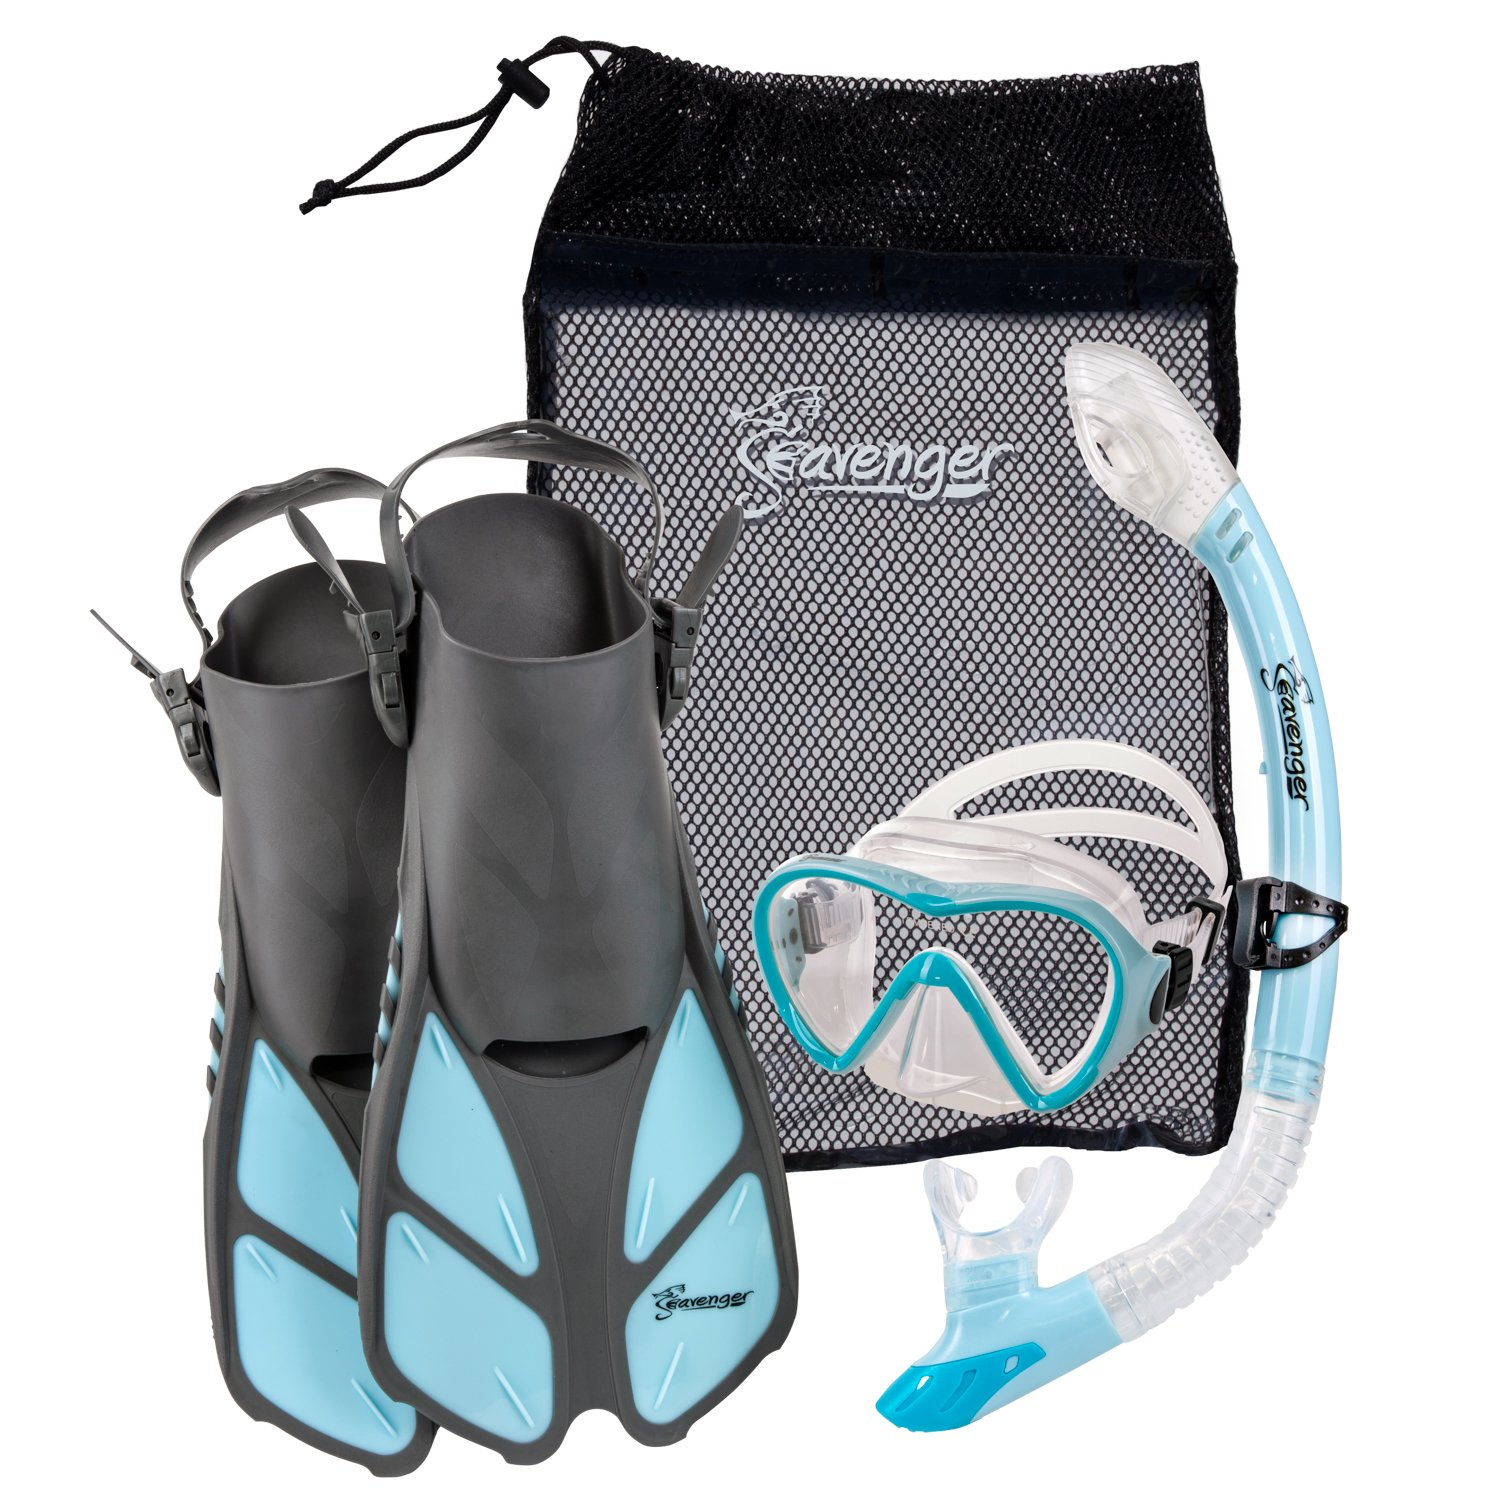 Seavenger Diving Dry Top Snorkel Set with Trek Fin, Single Lens Mask and Gear Bag, S/M - Size 4.5 to 8.5, Gray/Dodger Blue by Seavenger